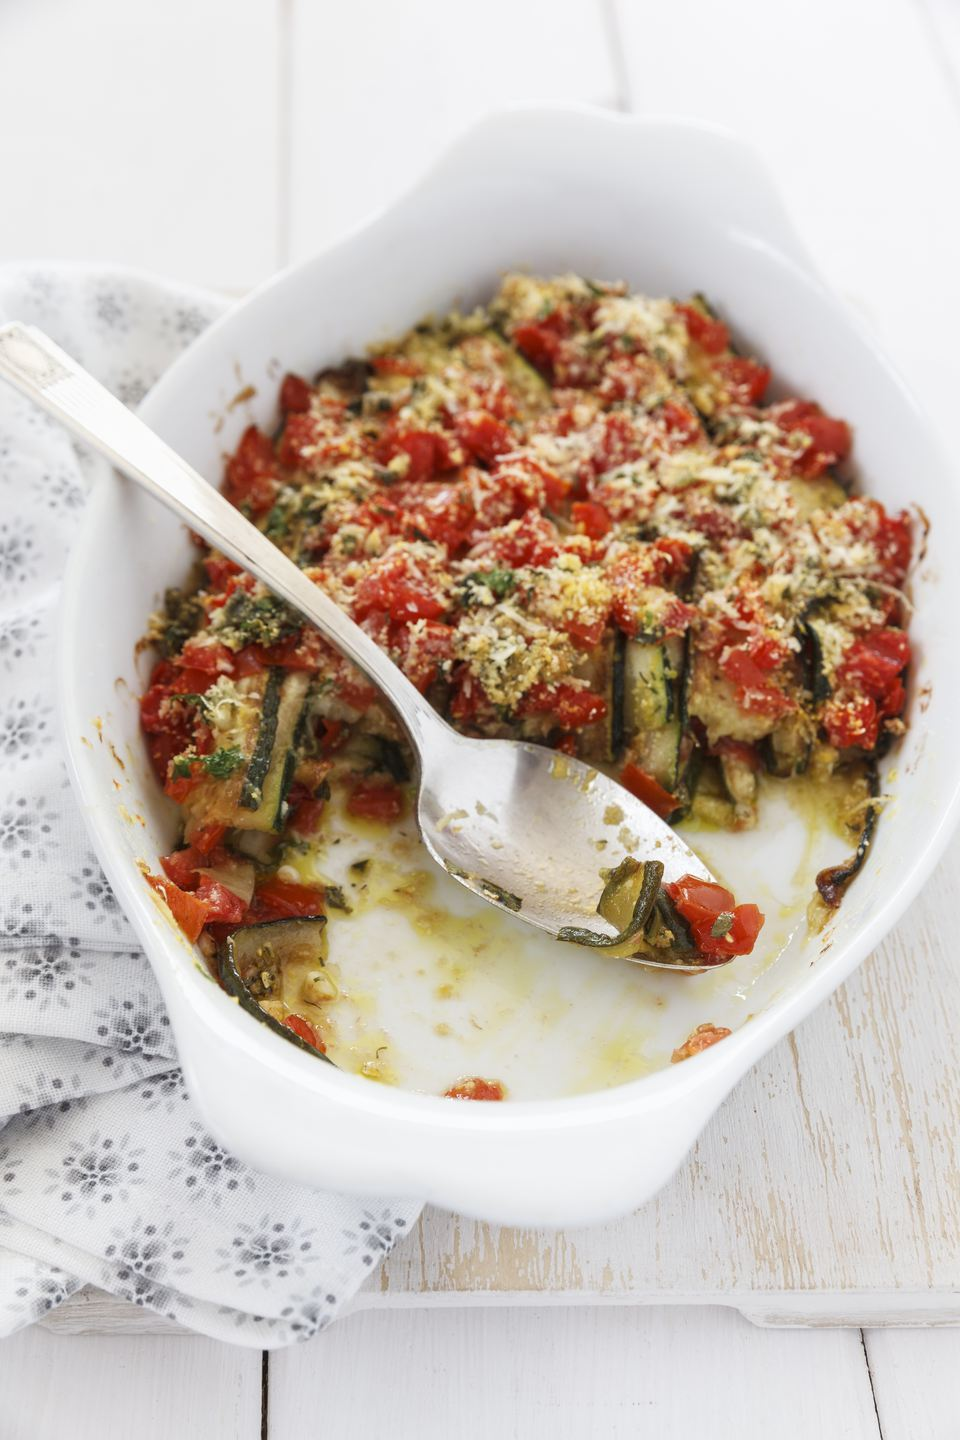 A bowl of zucchini and tomato casserole